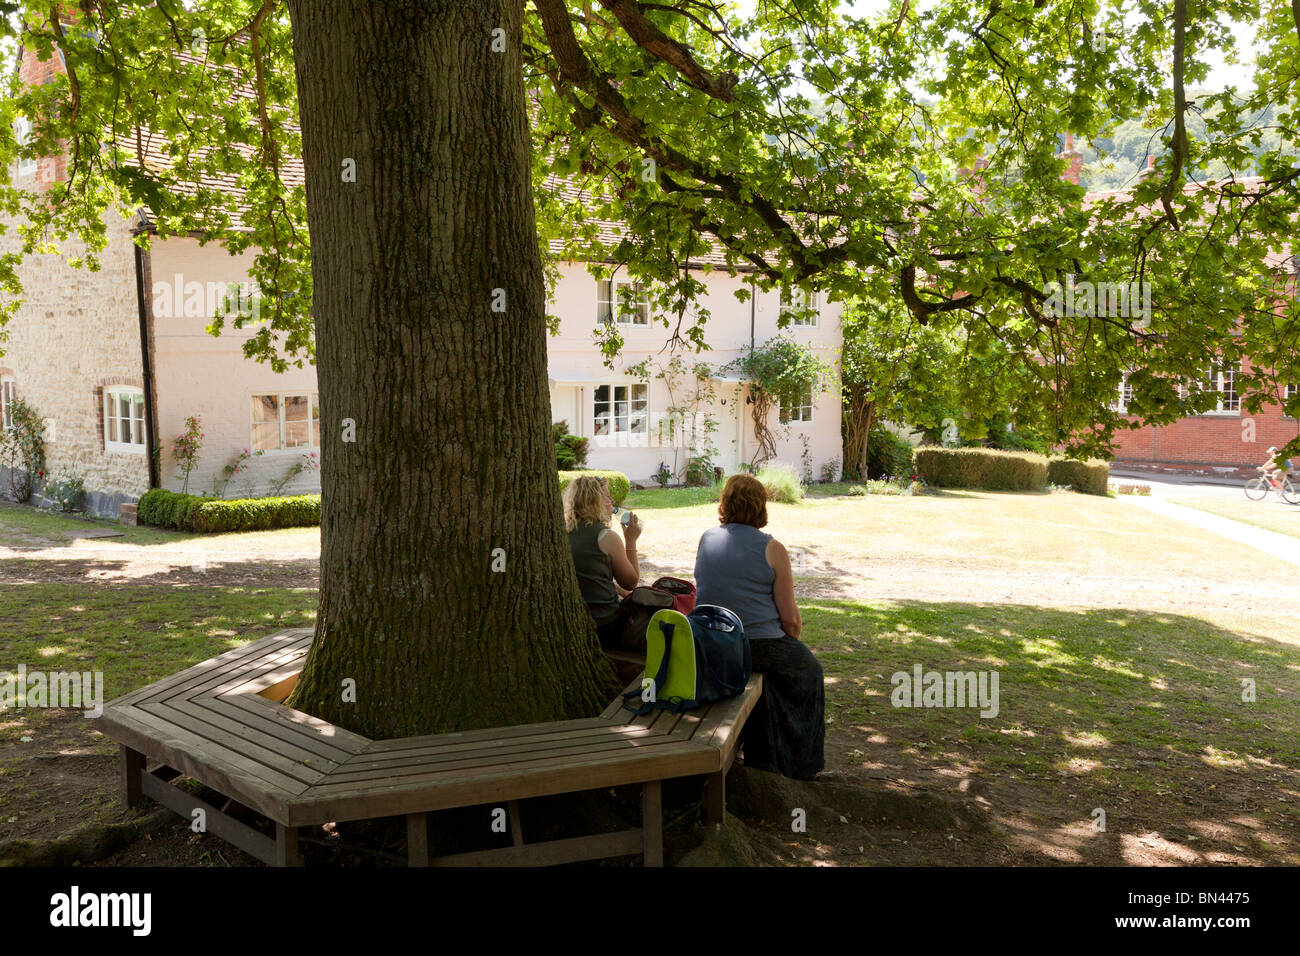 People Resting On Tree Bench Under The Shade Of An Oak